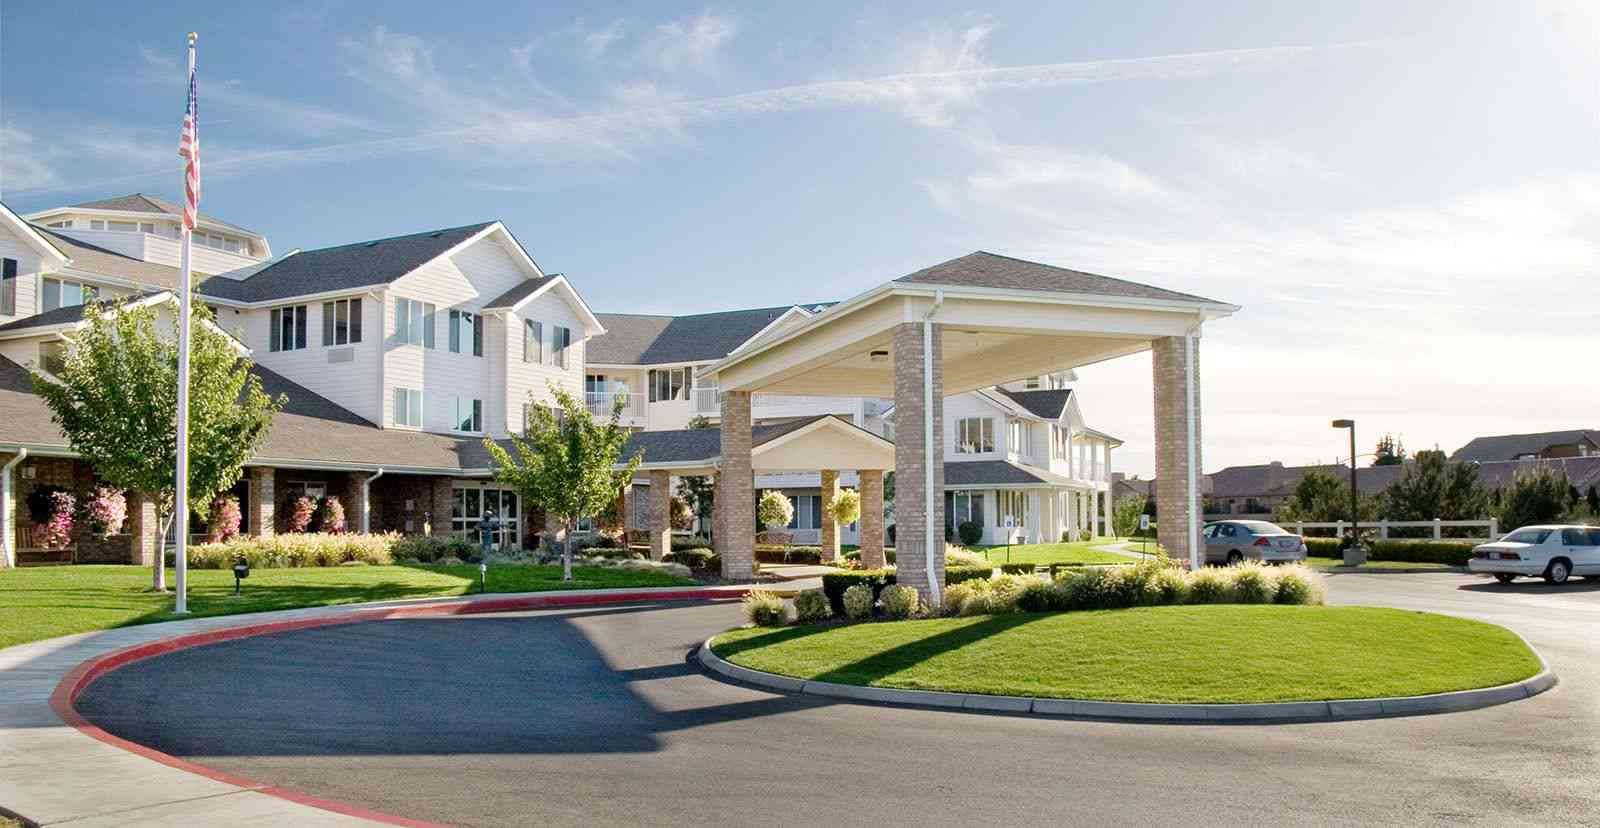 Photo 1 of Solstice Senior Living at Kennewick